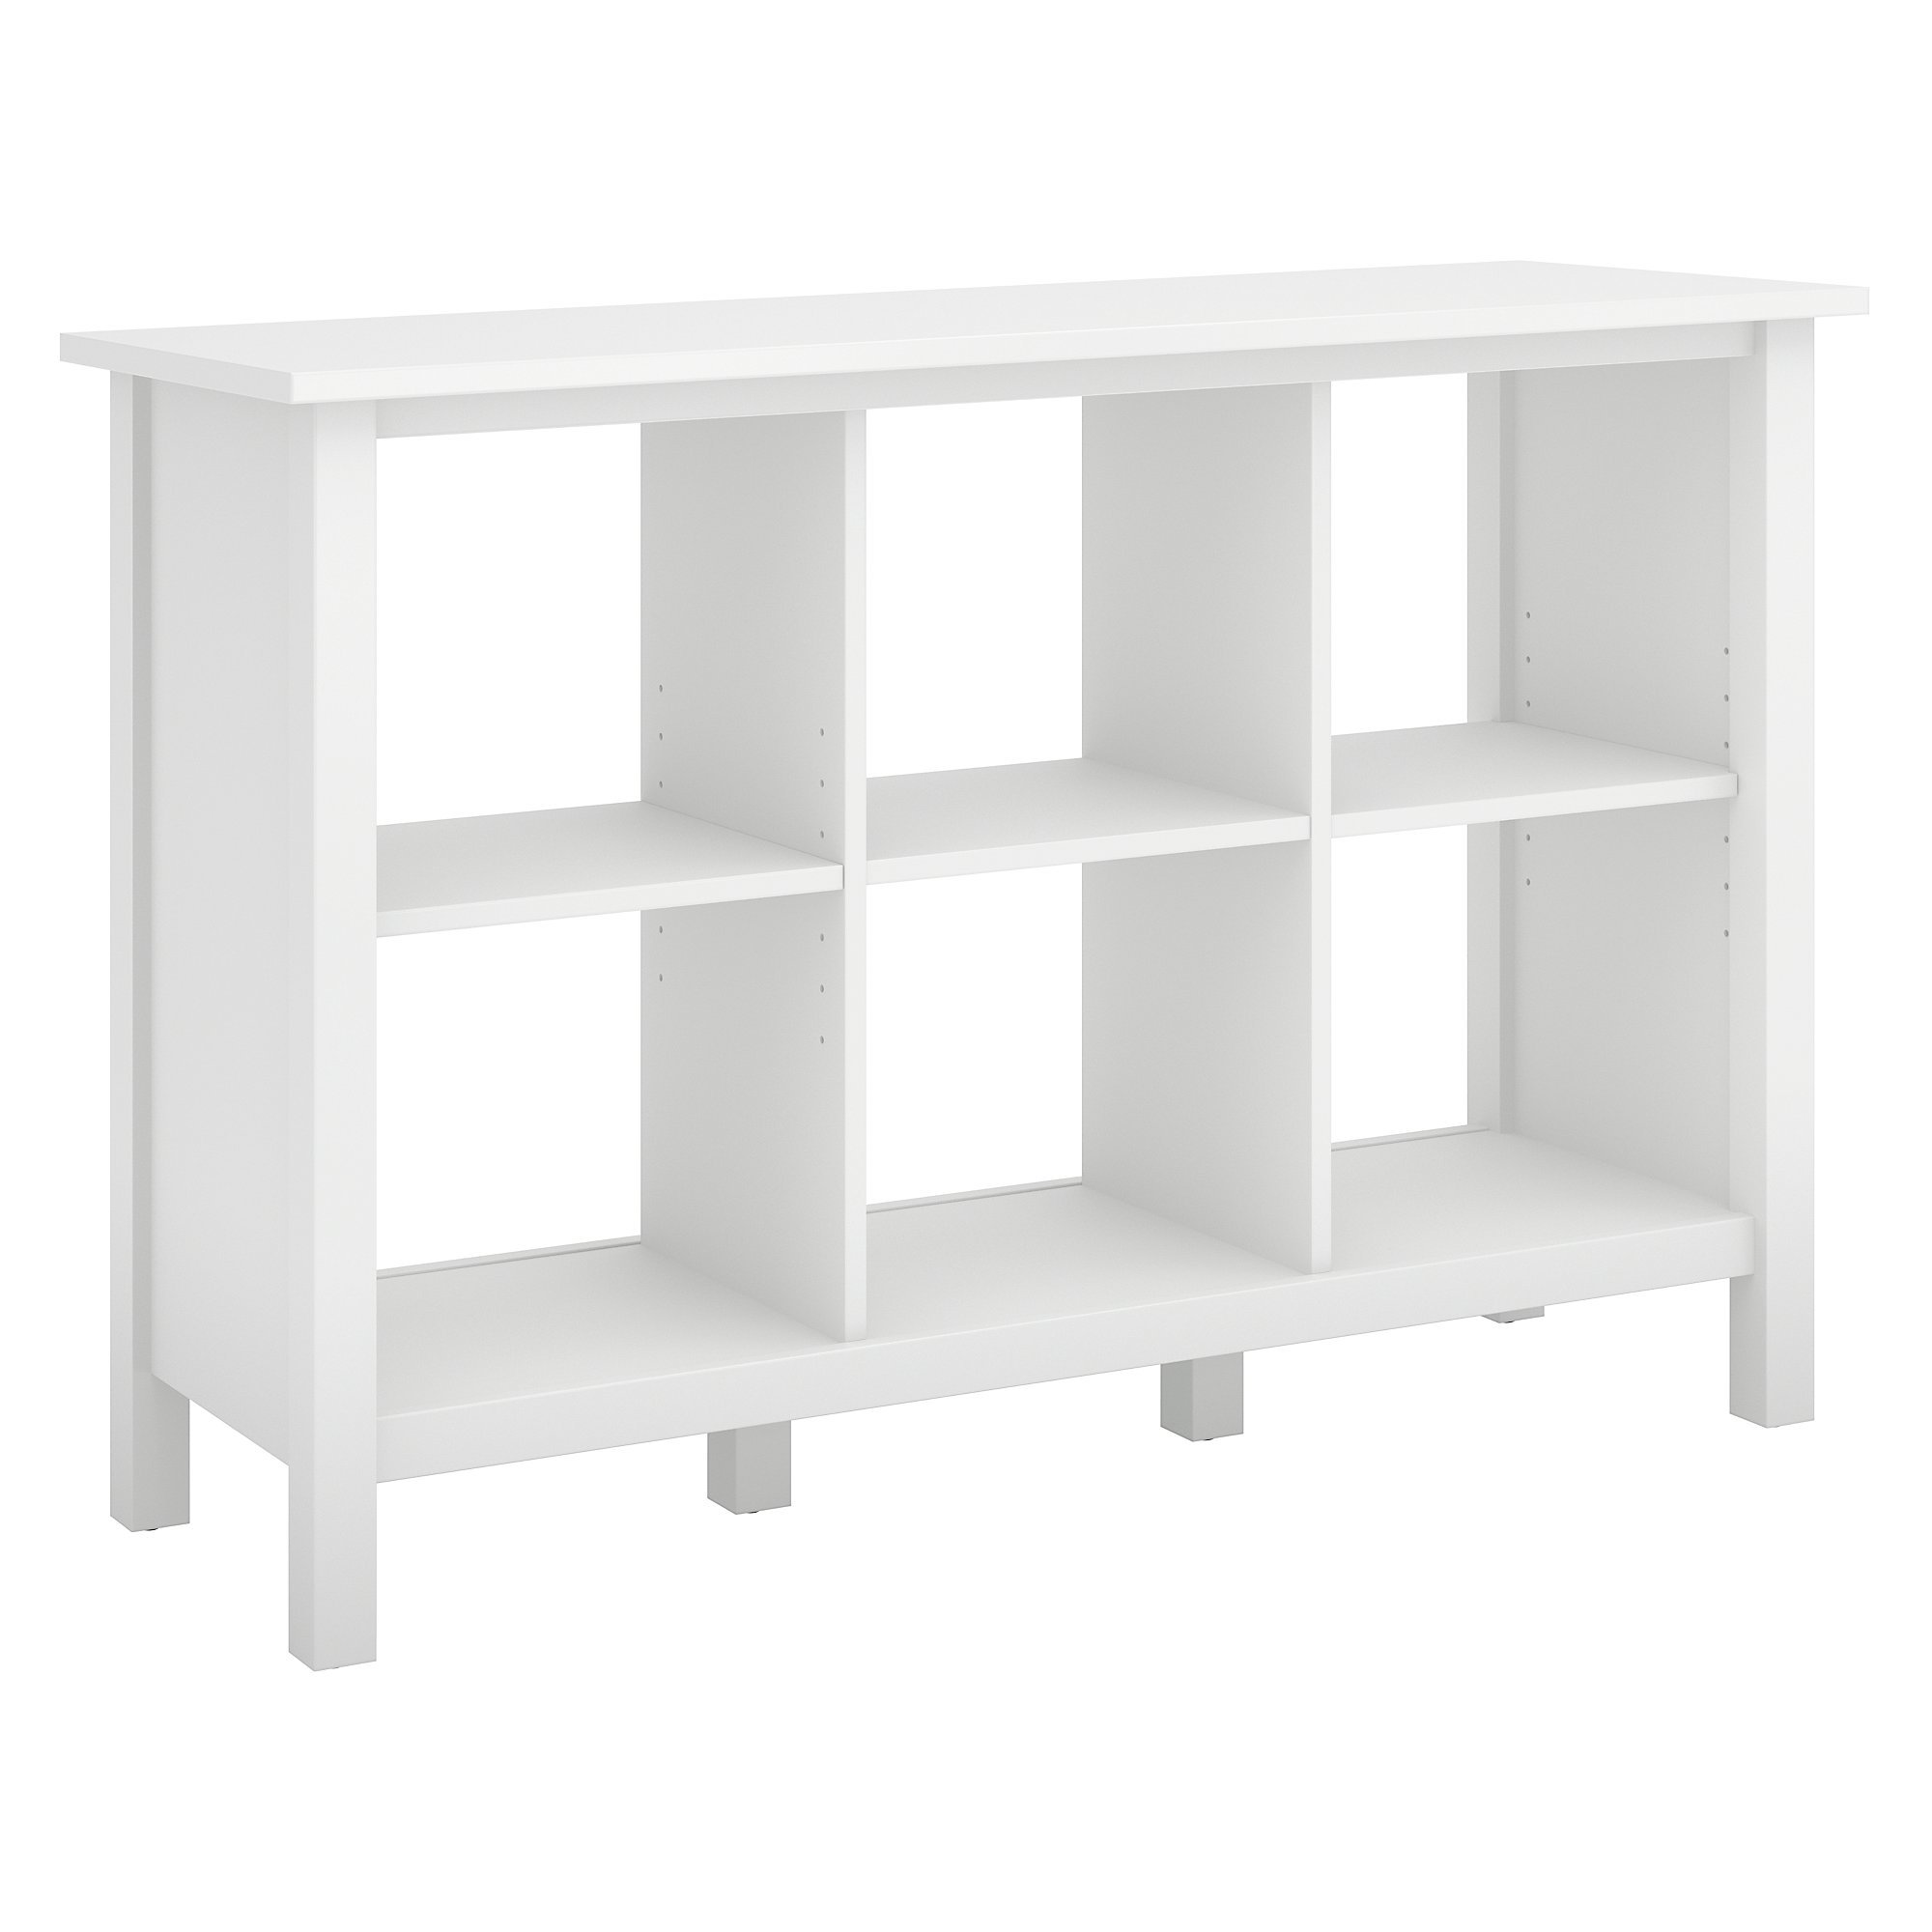 Broadview 6 Cube Storage Bookcase in Pure White by Bush Furniture (Image #2)